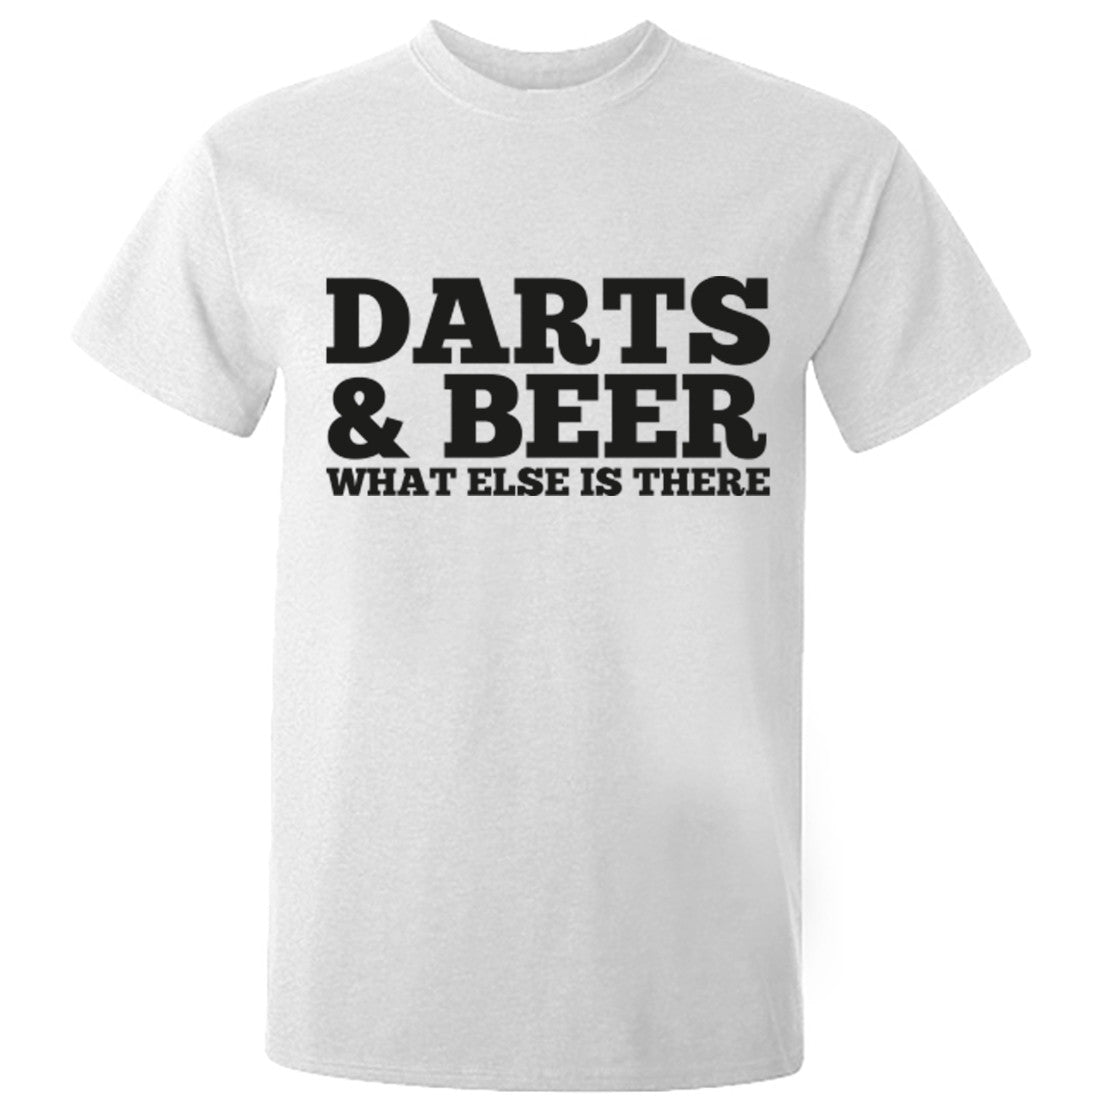 Darts And Beer What Else Is There Unisex Fit T-Shirt K0680 - Illustrated Identity Ltd.